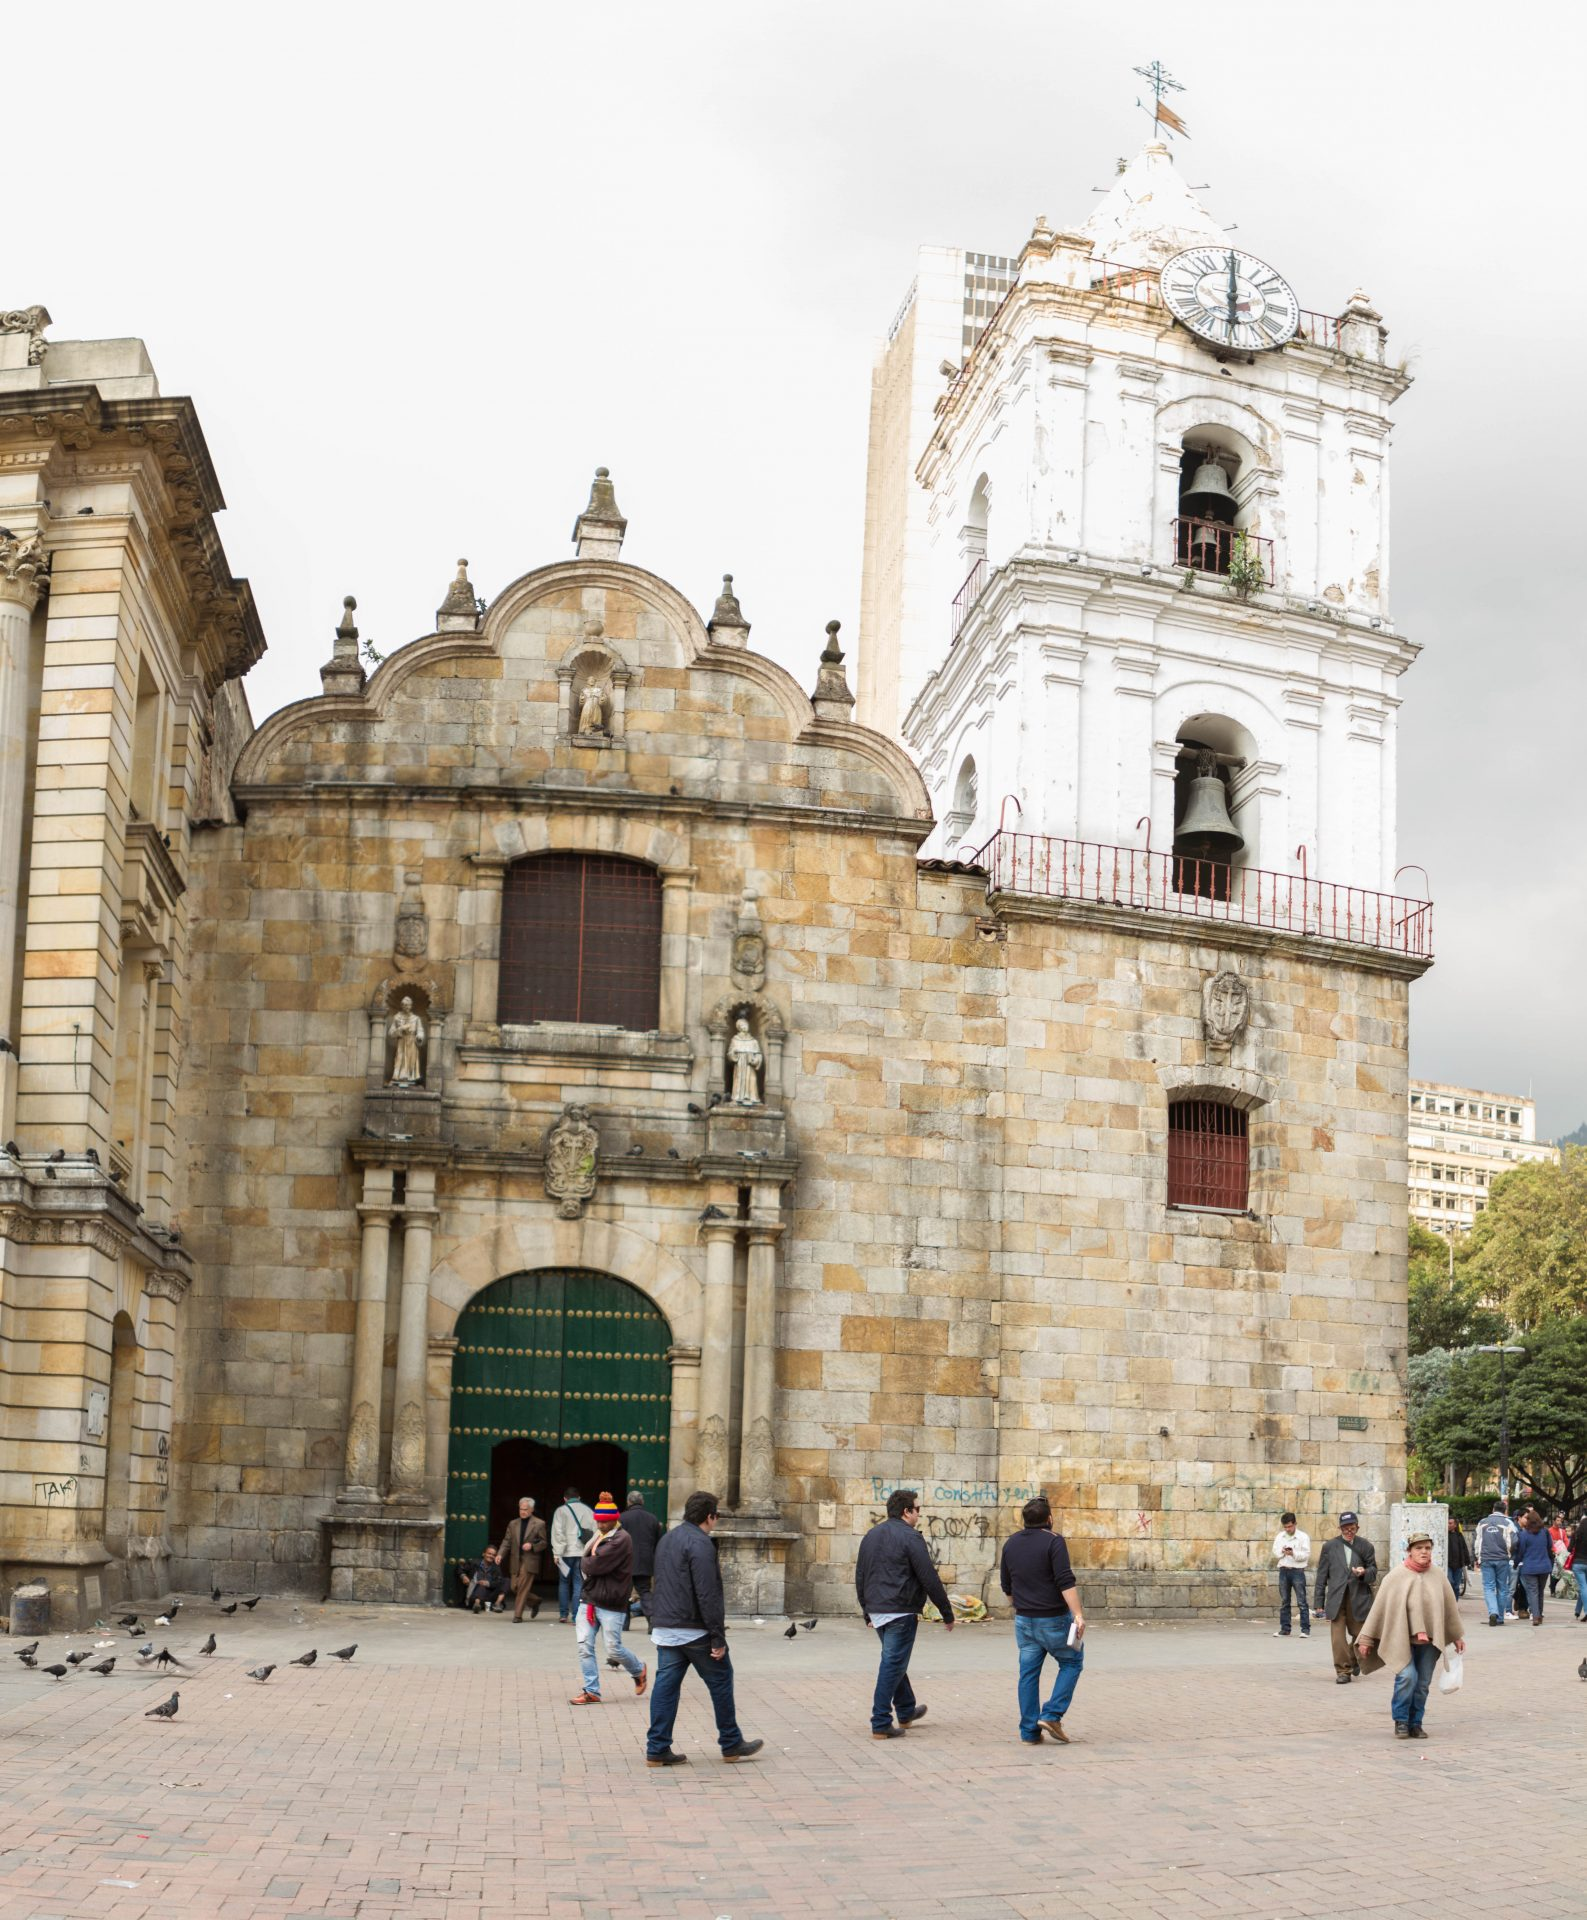 Facade of St Francis Church with people in the street in Bogota Colombia.